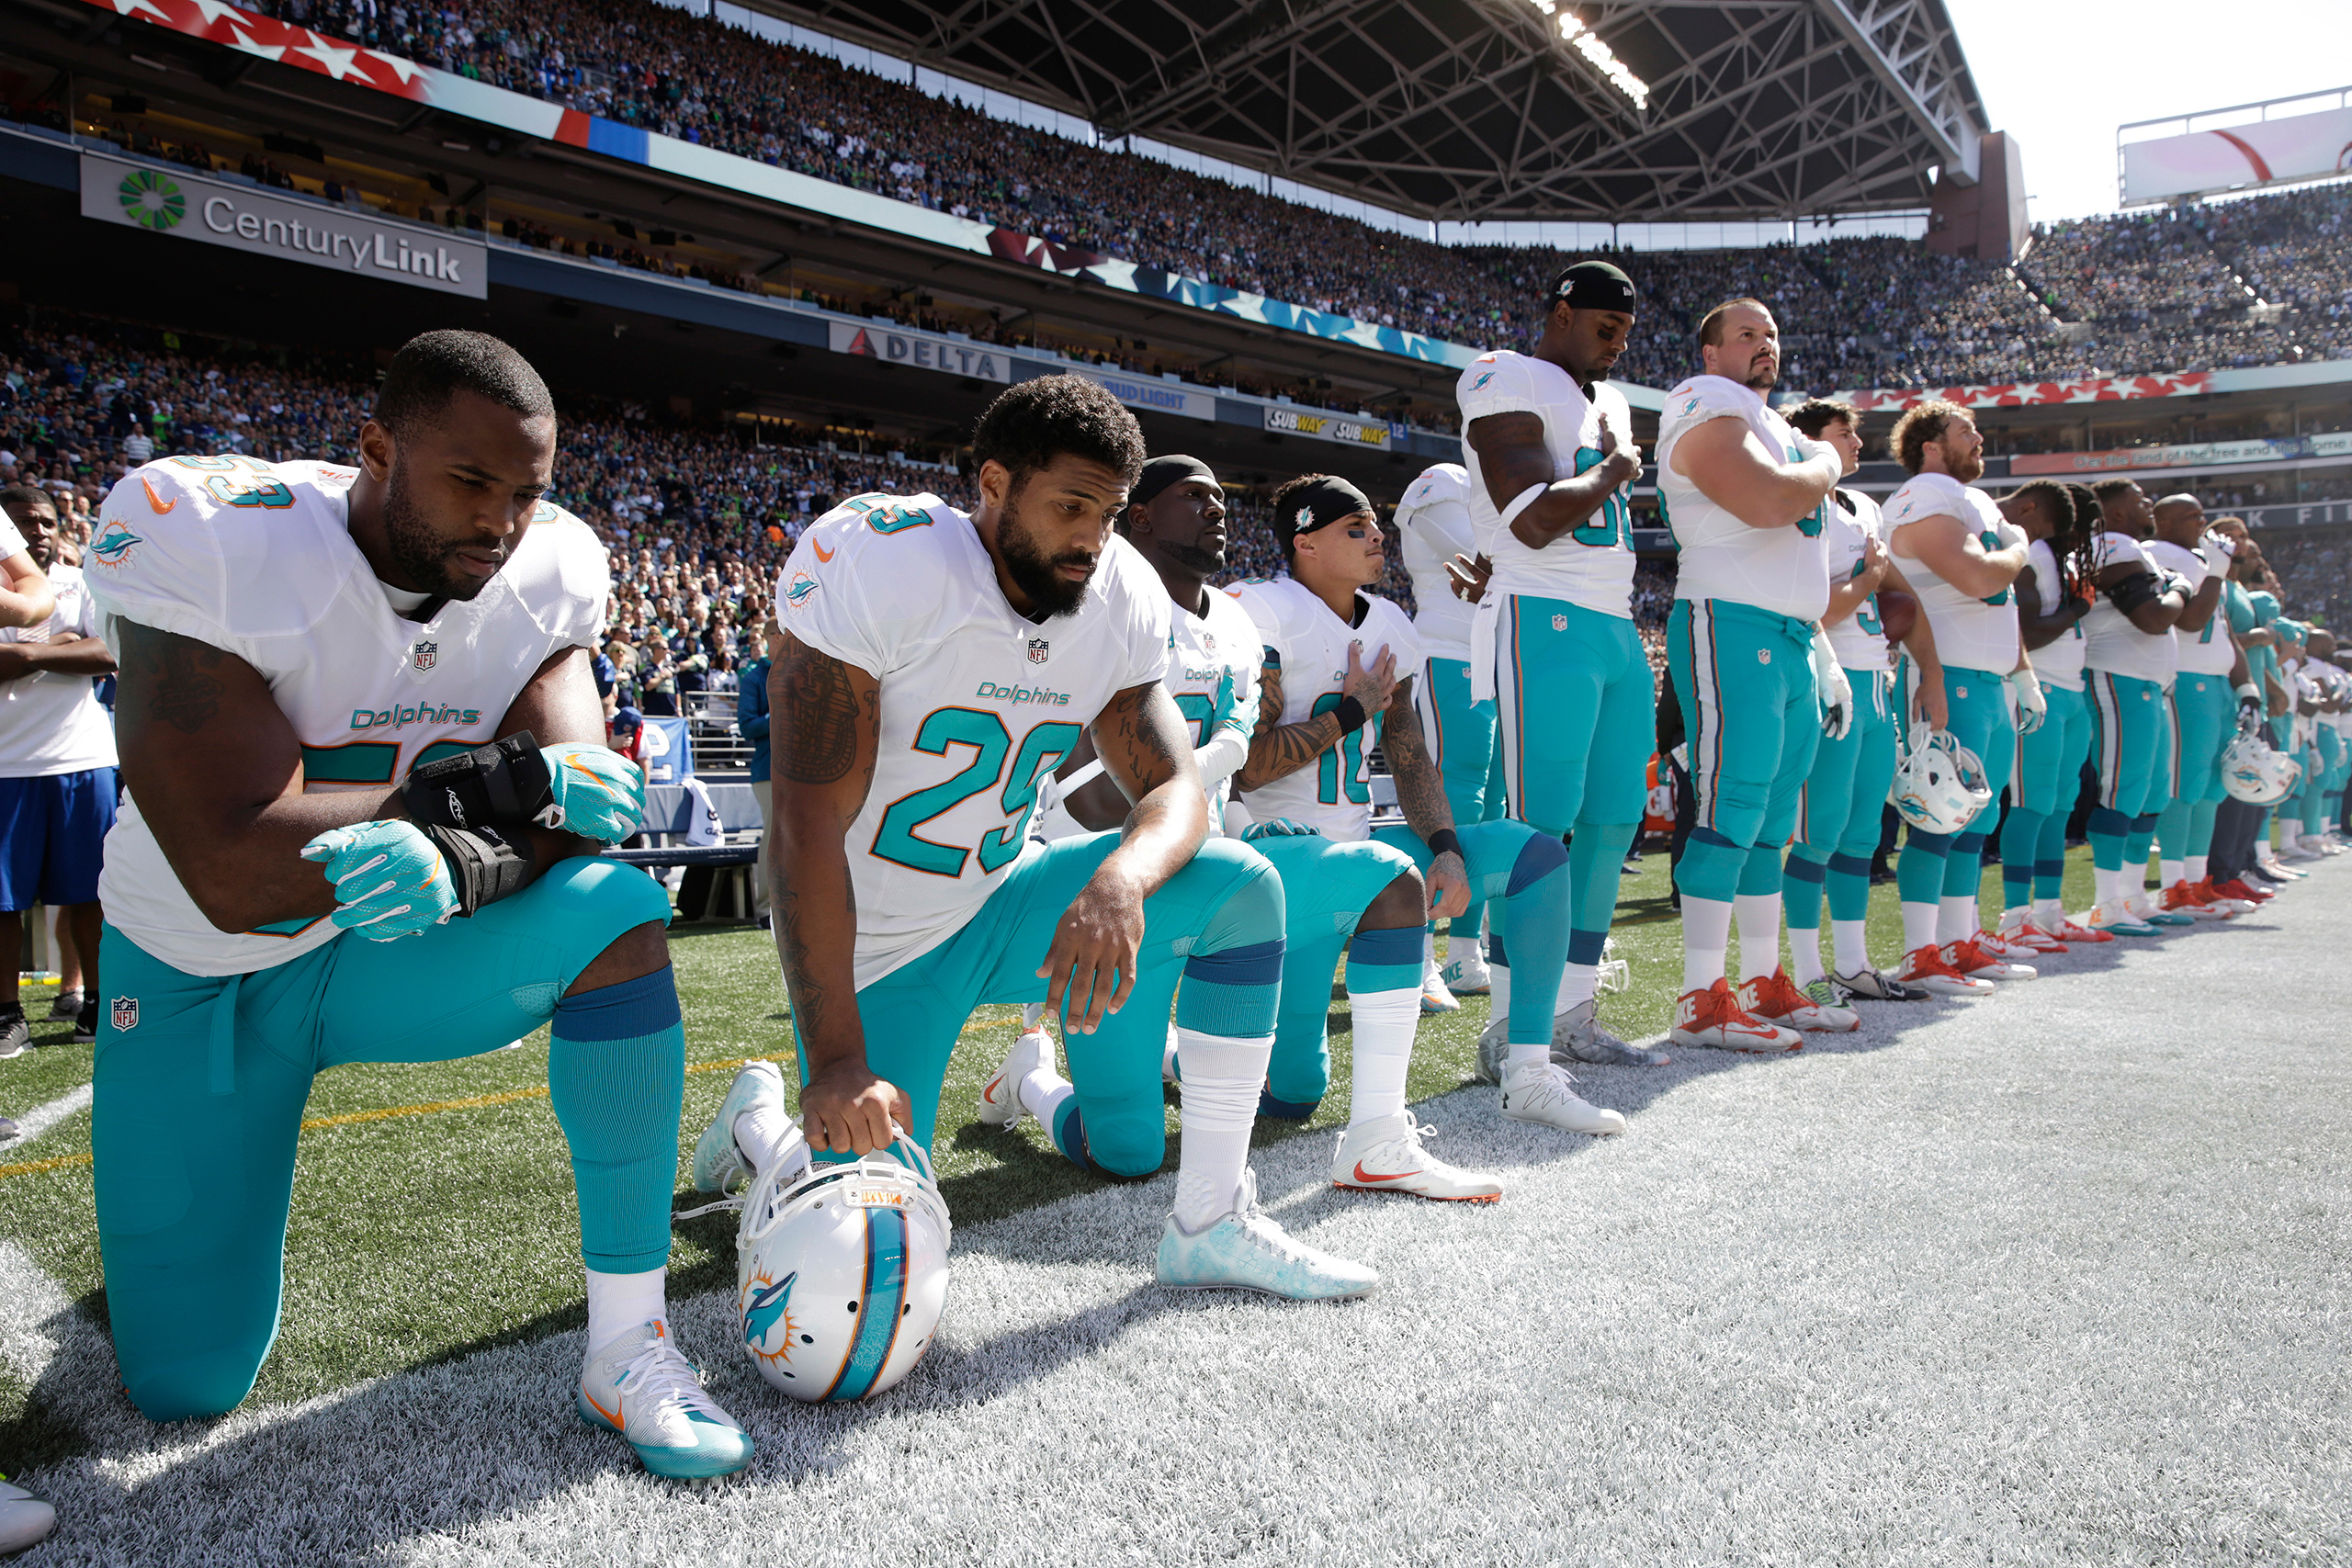 Jelani Jenkins, Arian Foster, Michael Thomas, and Kenny Stills of the Miami Dolphins kneel during the singing of the national anthem before a game against the Seattle Seahawks in Seattle on Sept. 11, 2016.